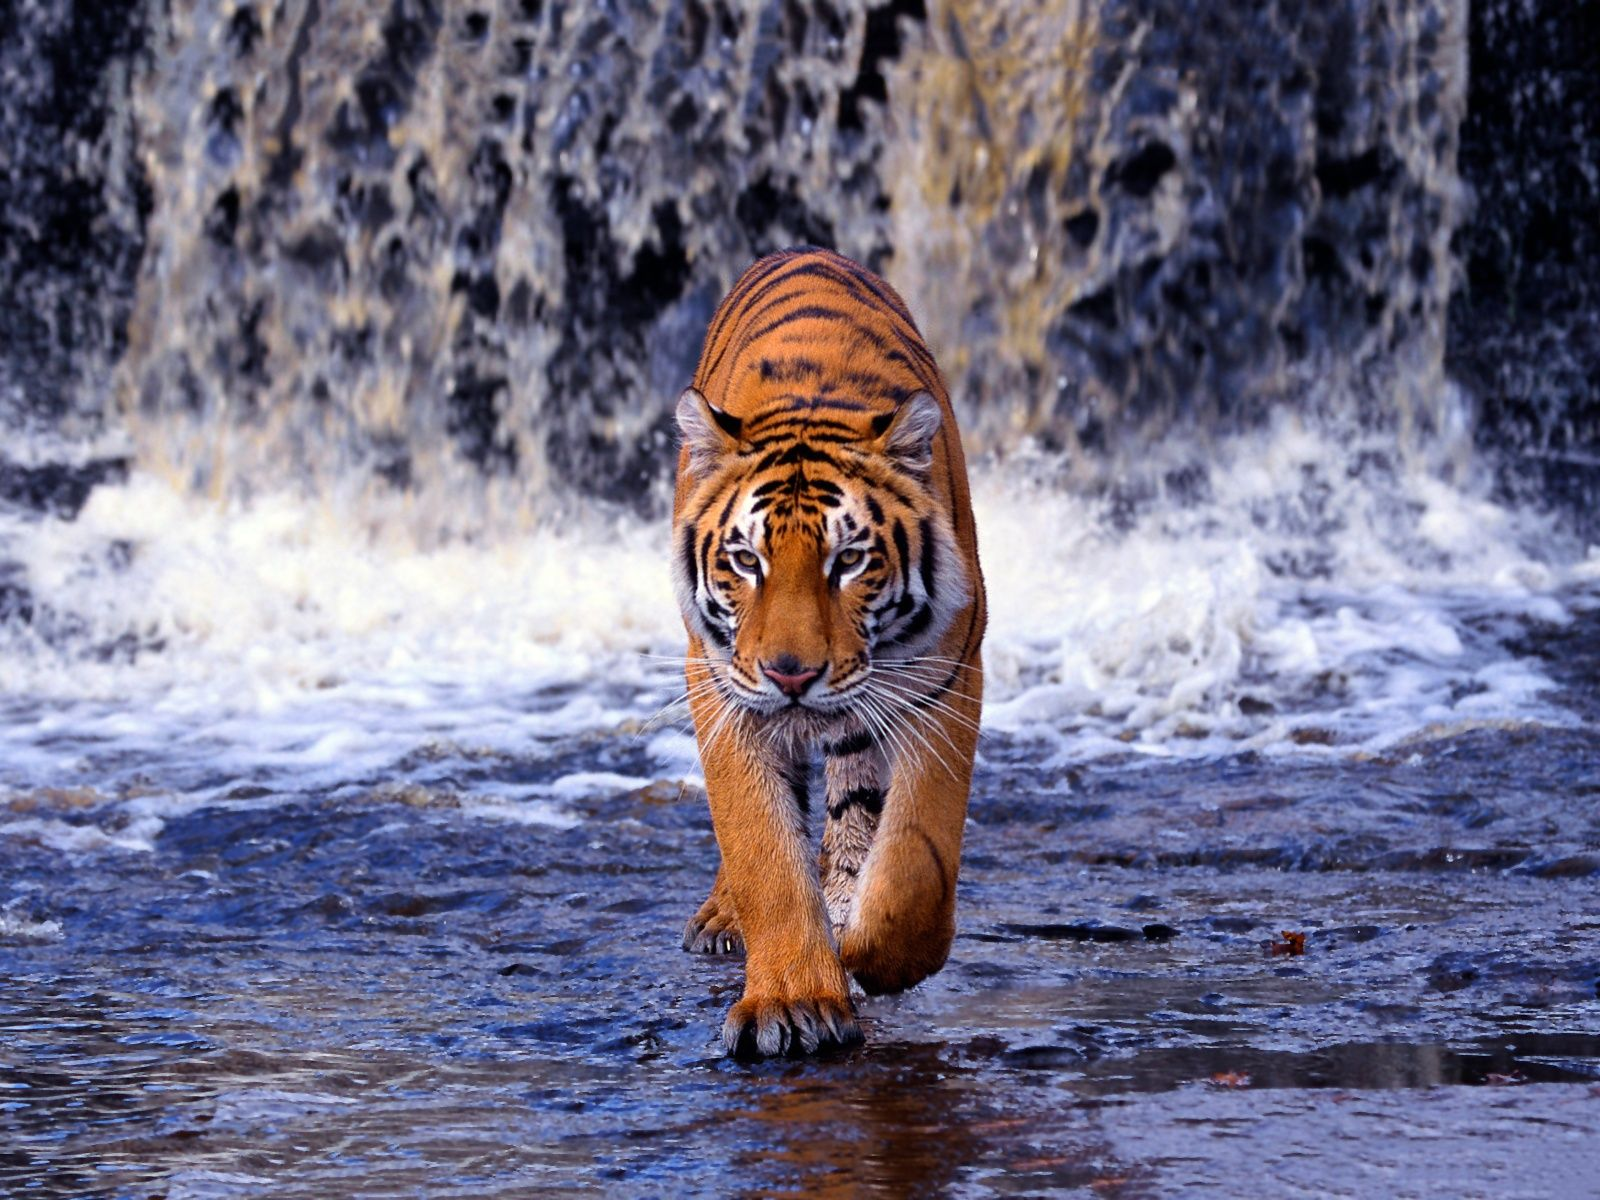 bengal tiger hd wallpapers   android   pinterest   bengal tiger